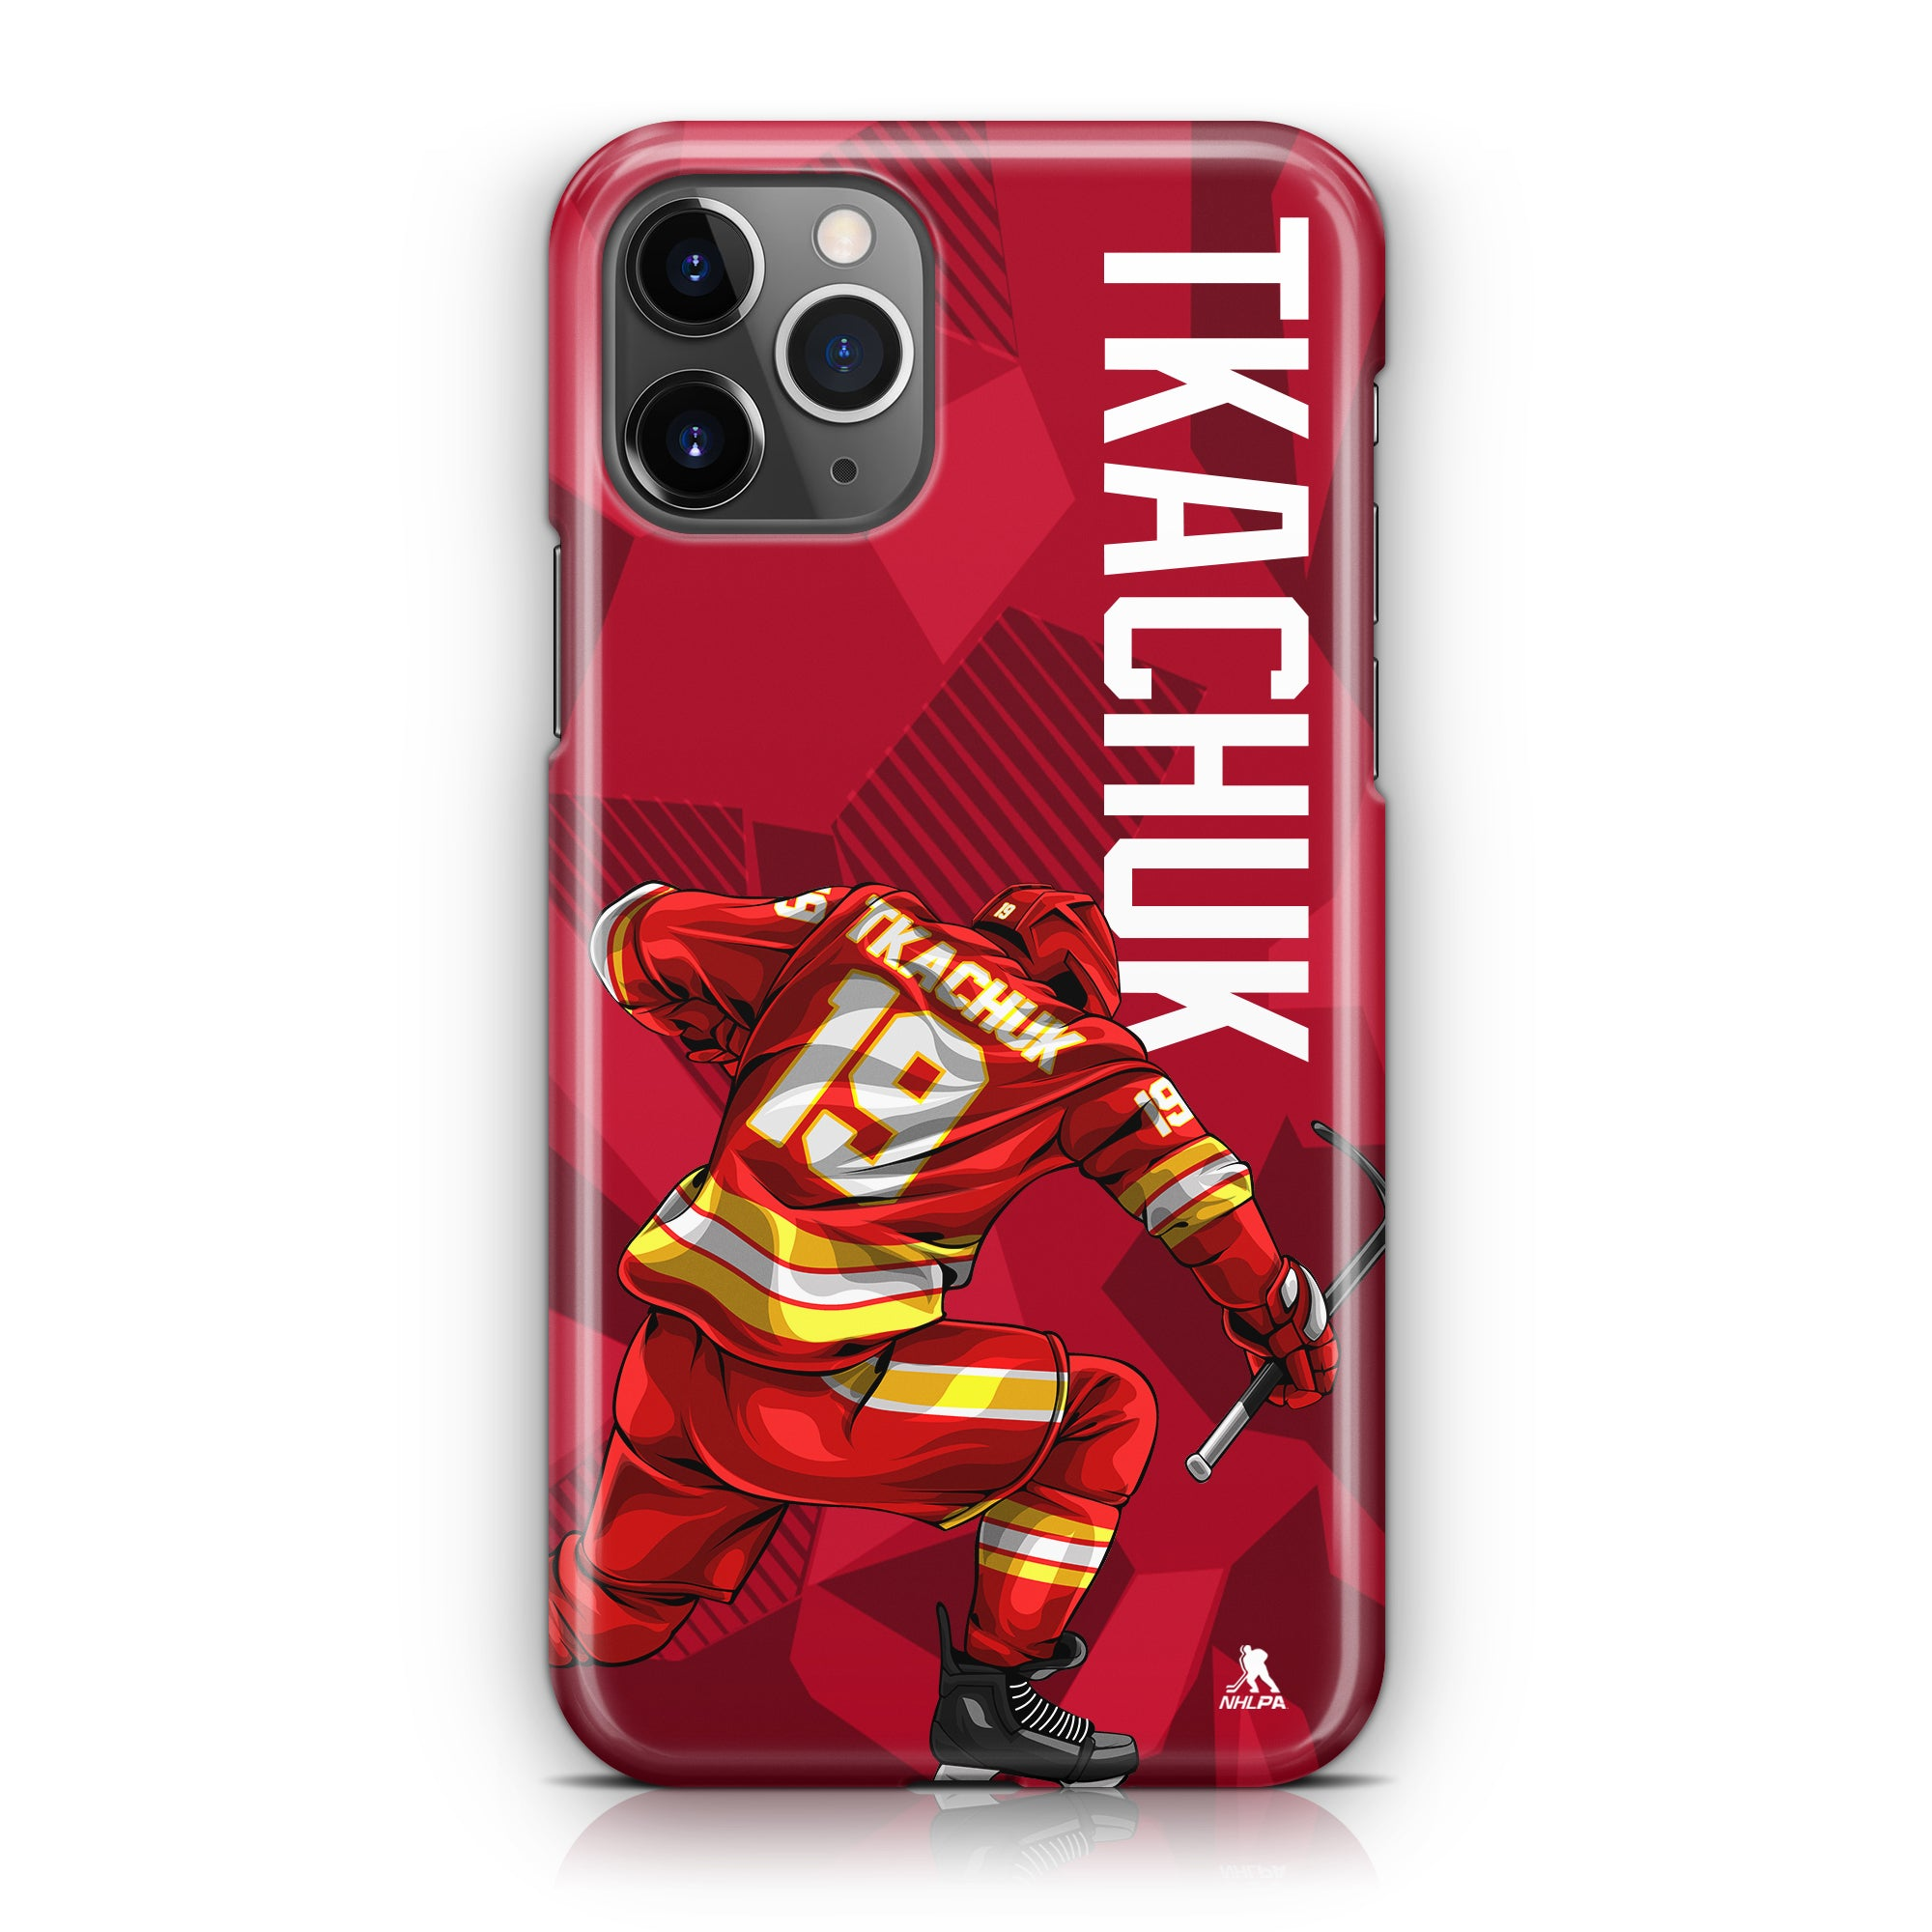 M.Tkachuk Star Series 2.0 Case